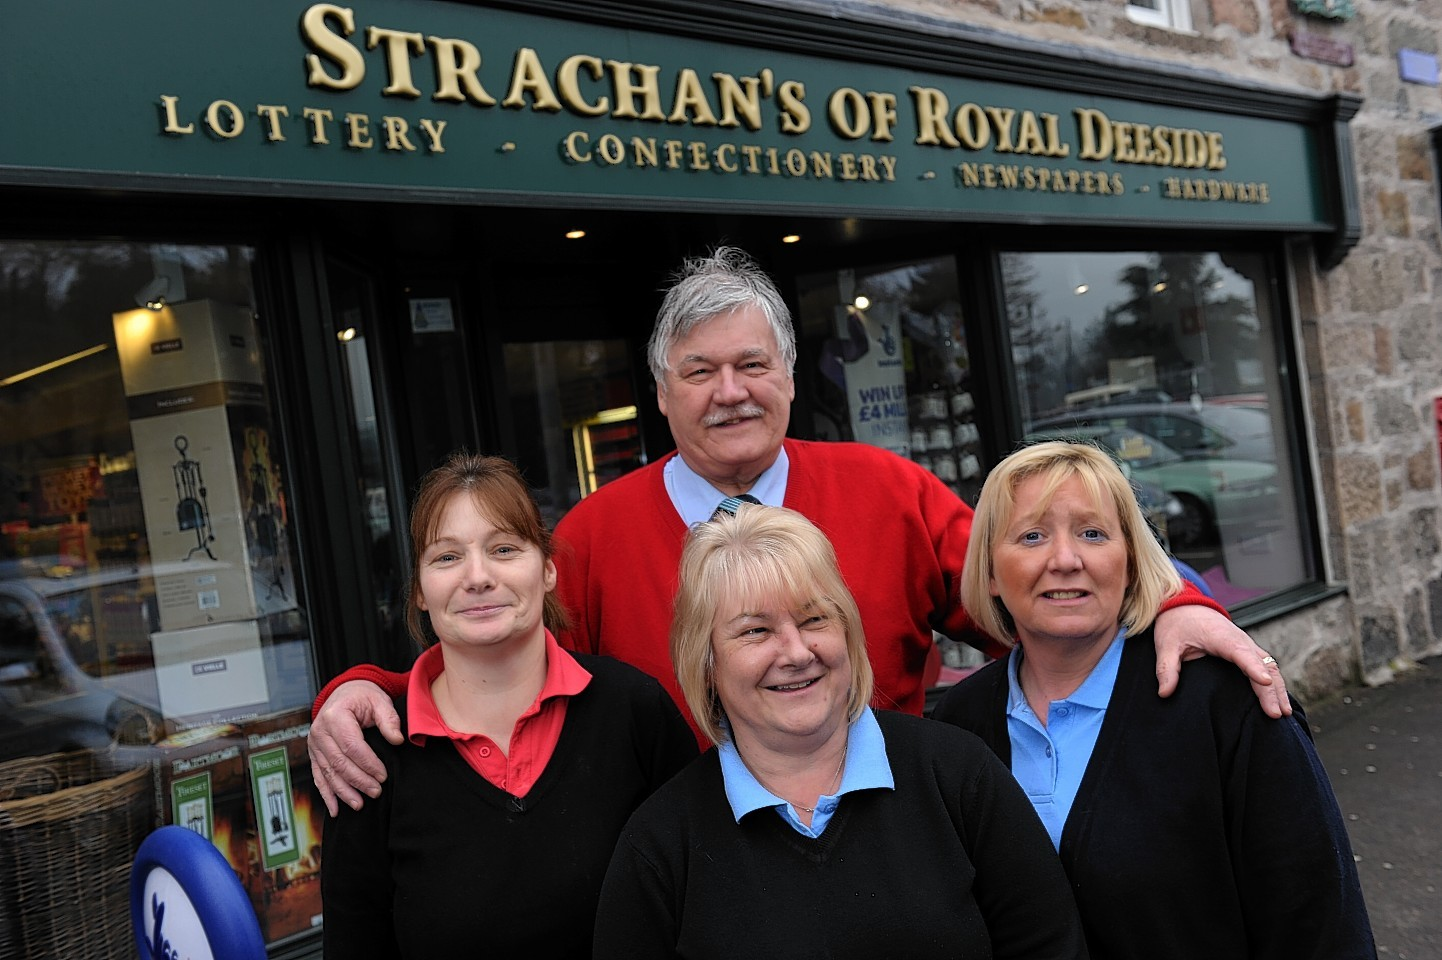 George Strachan with staff members Maria Sutton, Phyllis Taylor, and Julie Strachan.  Picture by Kenny Elrick